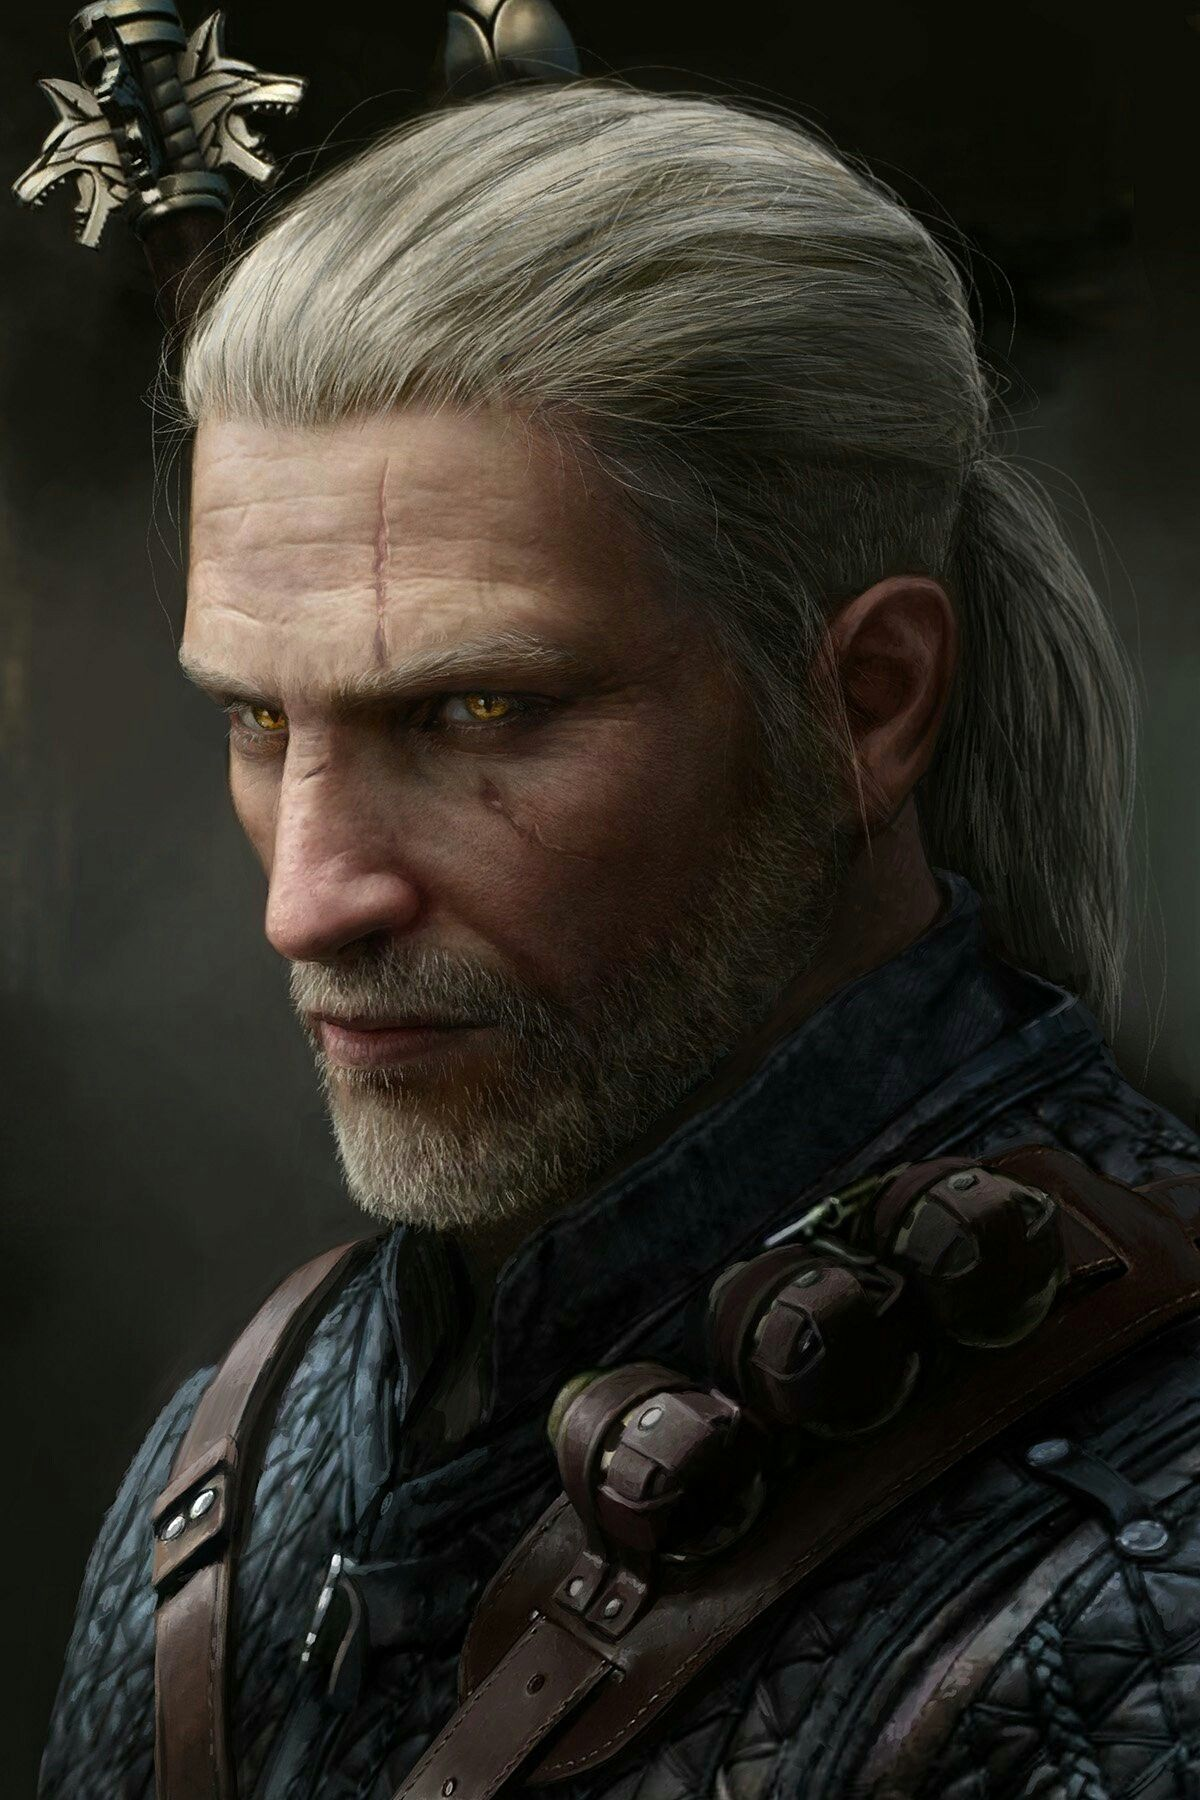 Pin By Luna On Horizon The Witcher Game The Witcher Wild Hunt The Witcher Geralt